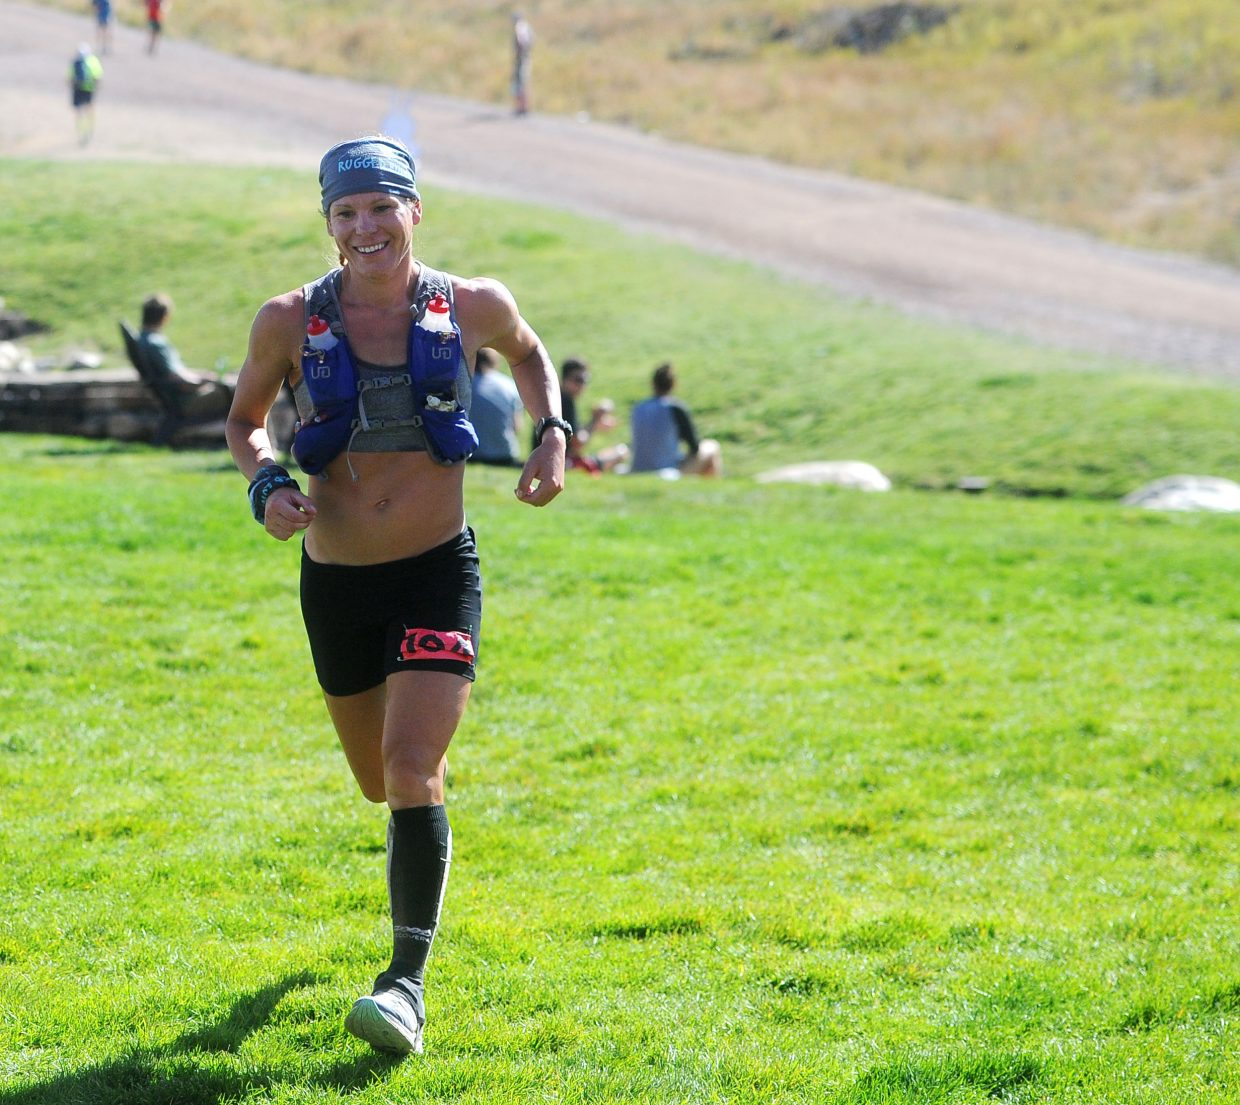 Michele Yates from Conifer runs to the finish to take first place in the women's hare division of the Steamboat Springs Run Rabbit Run 100 with a time of 22 hours, 33 minutes and 54 seconds.